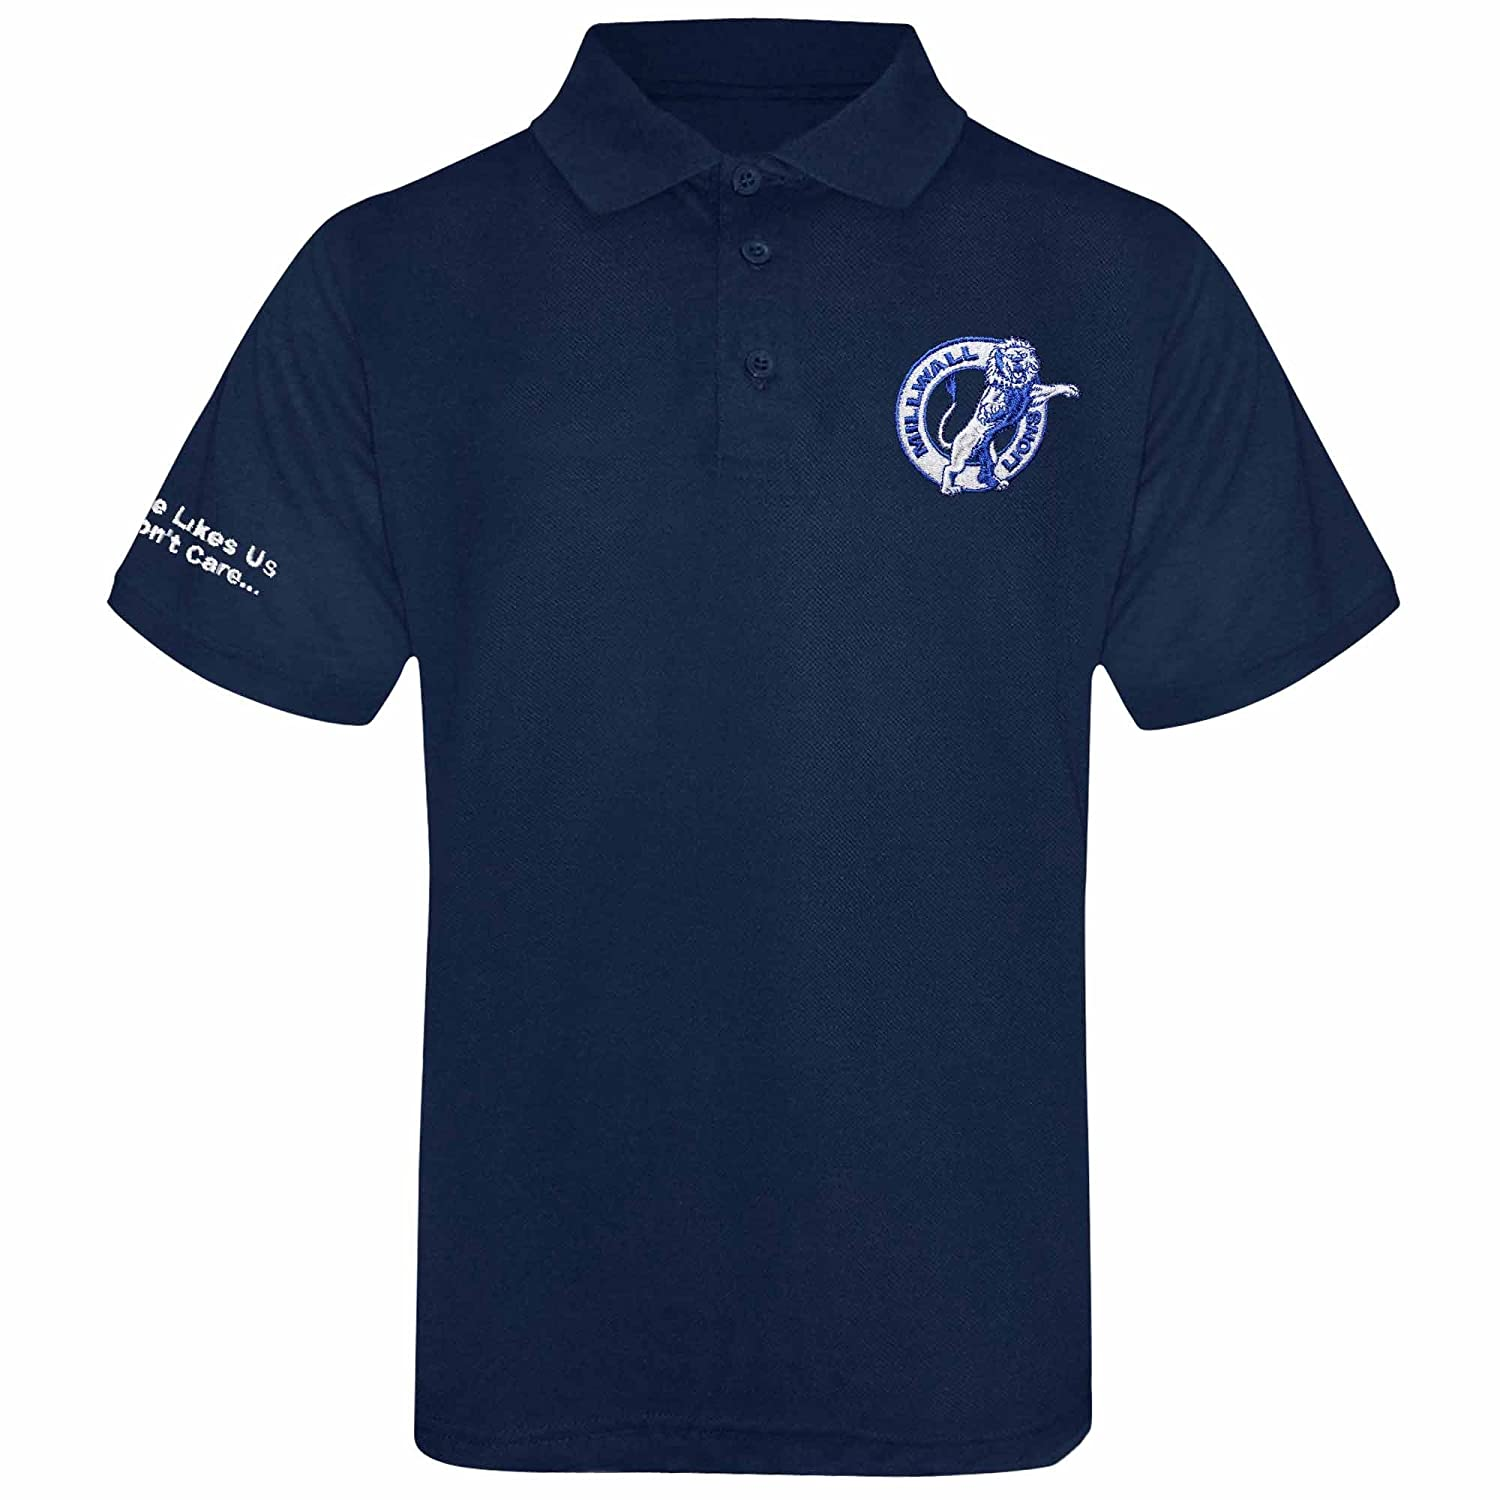 Millwall Lions Embroidered Crest Polo Shirt (Adult Sizes S to 4XL)